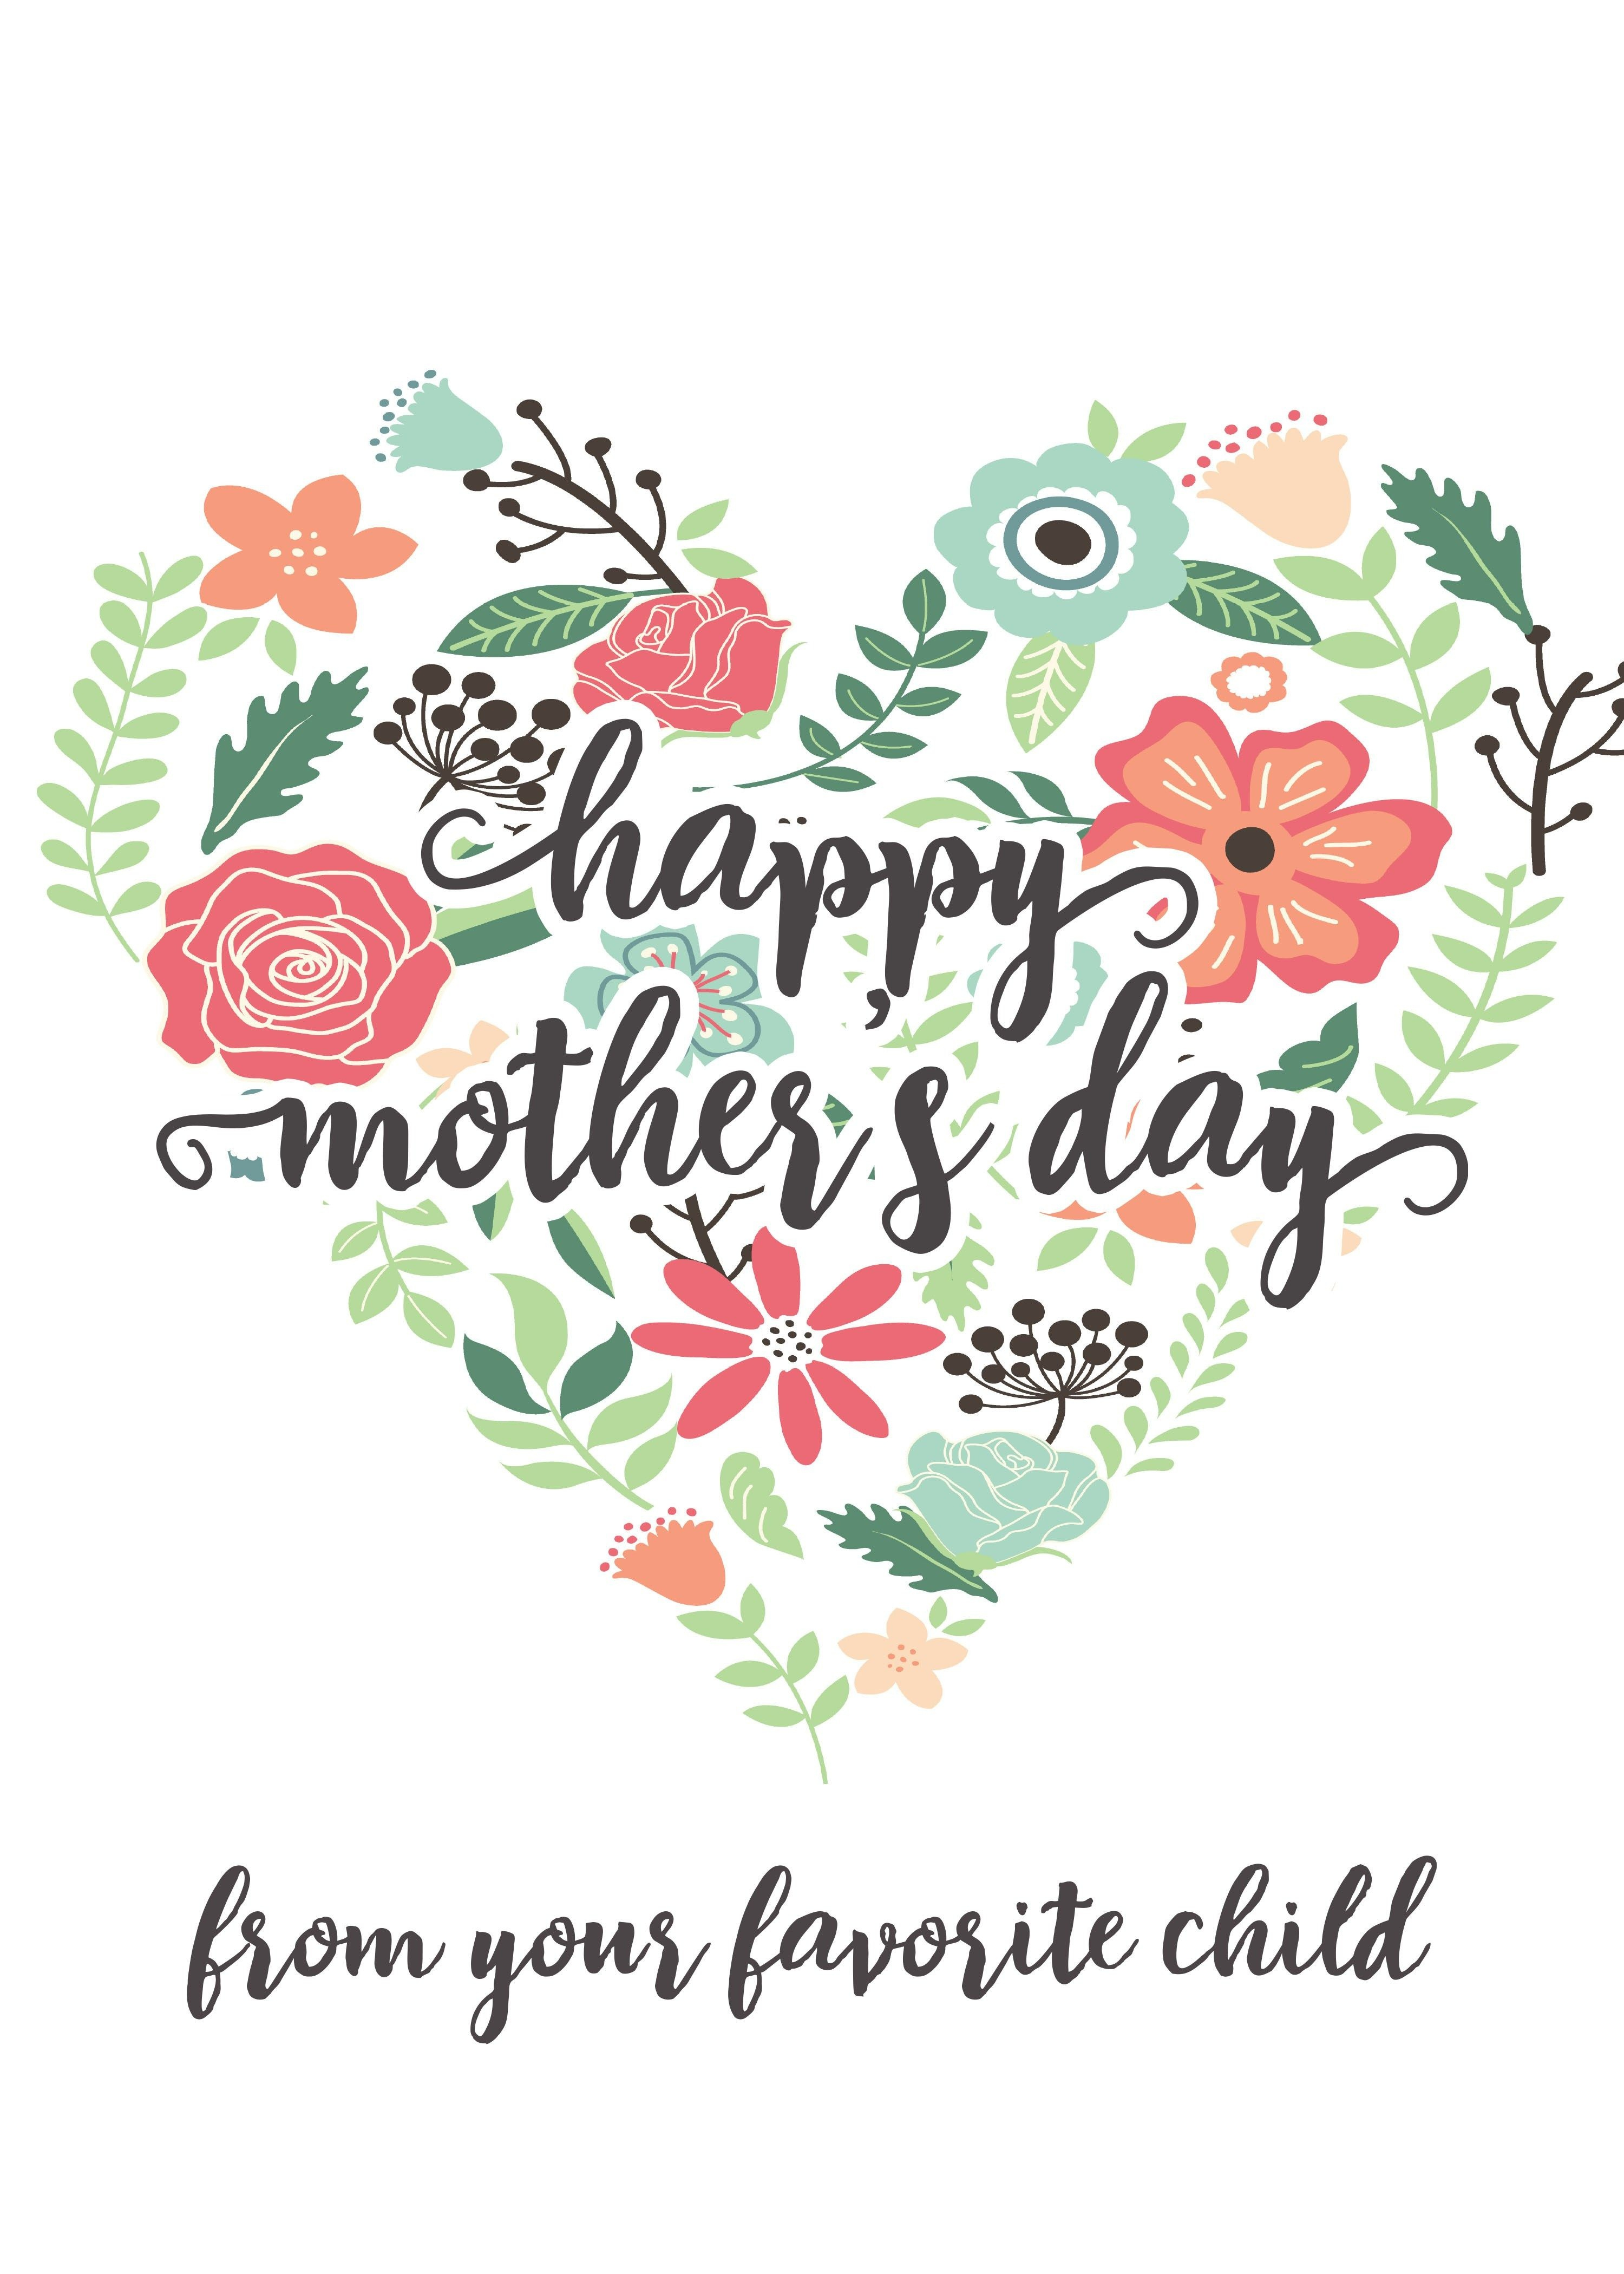 Happy Mothers Day Messages Free Printable Mothers Day Cards - Free Printable Mothers Day Cards To My Wife